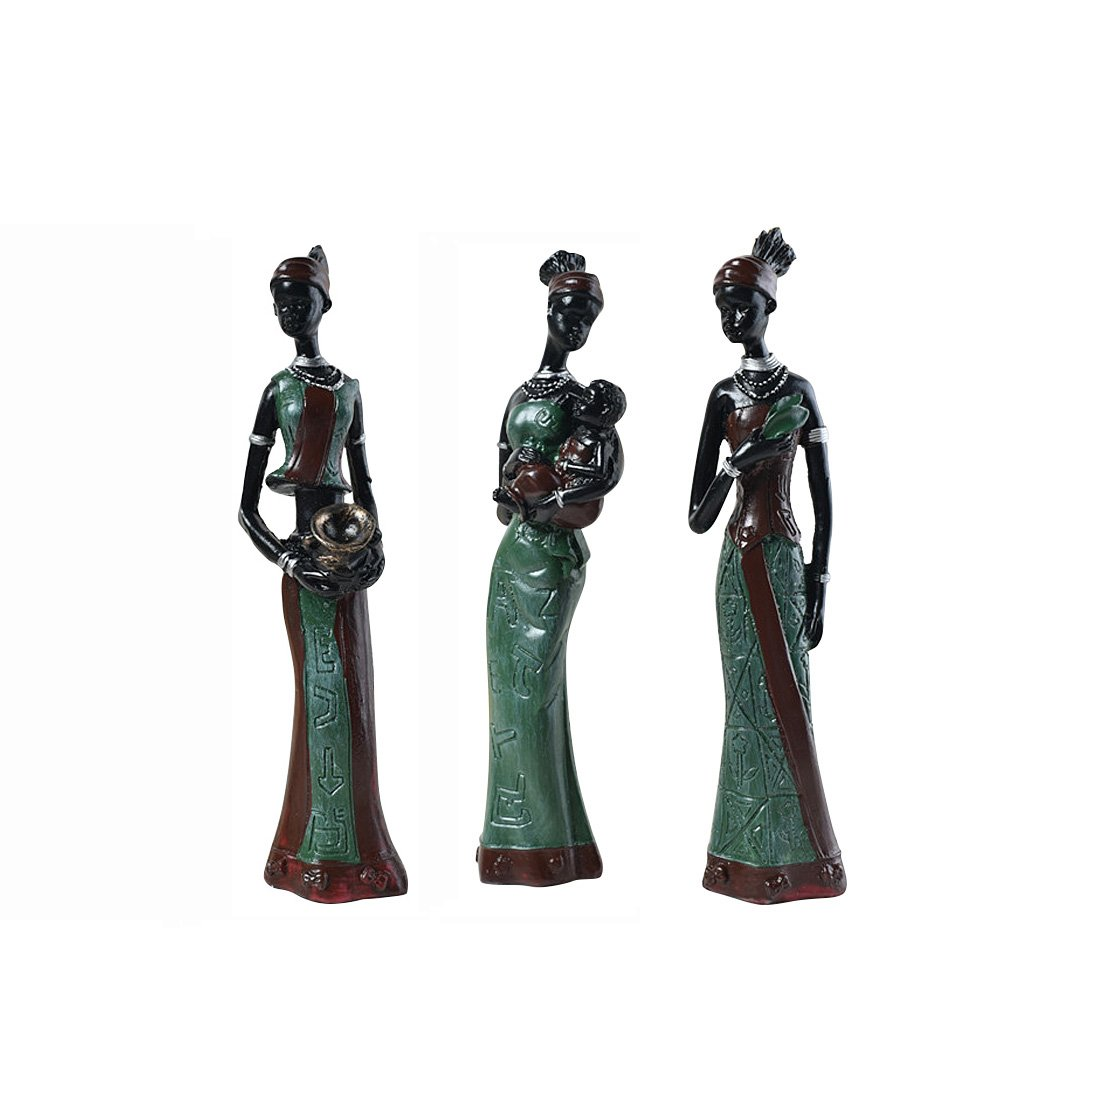 TBW African Tribal Women Collectible Figurines for Mother's Gifts,Green,Pack of 3 by TBW (Image #1)